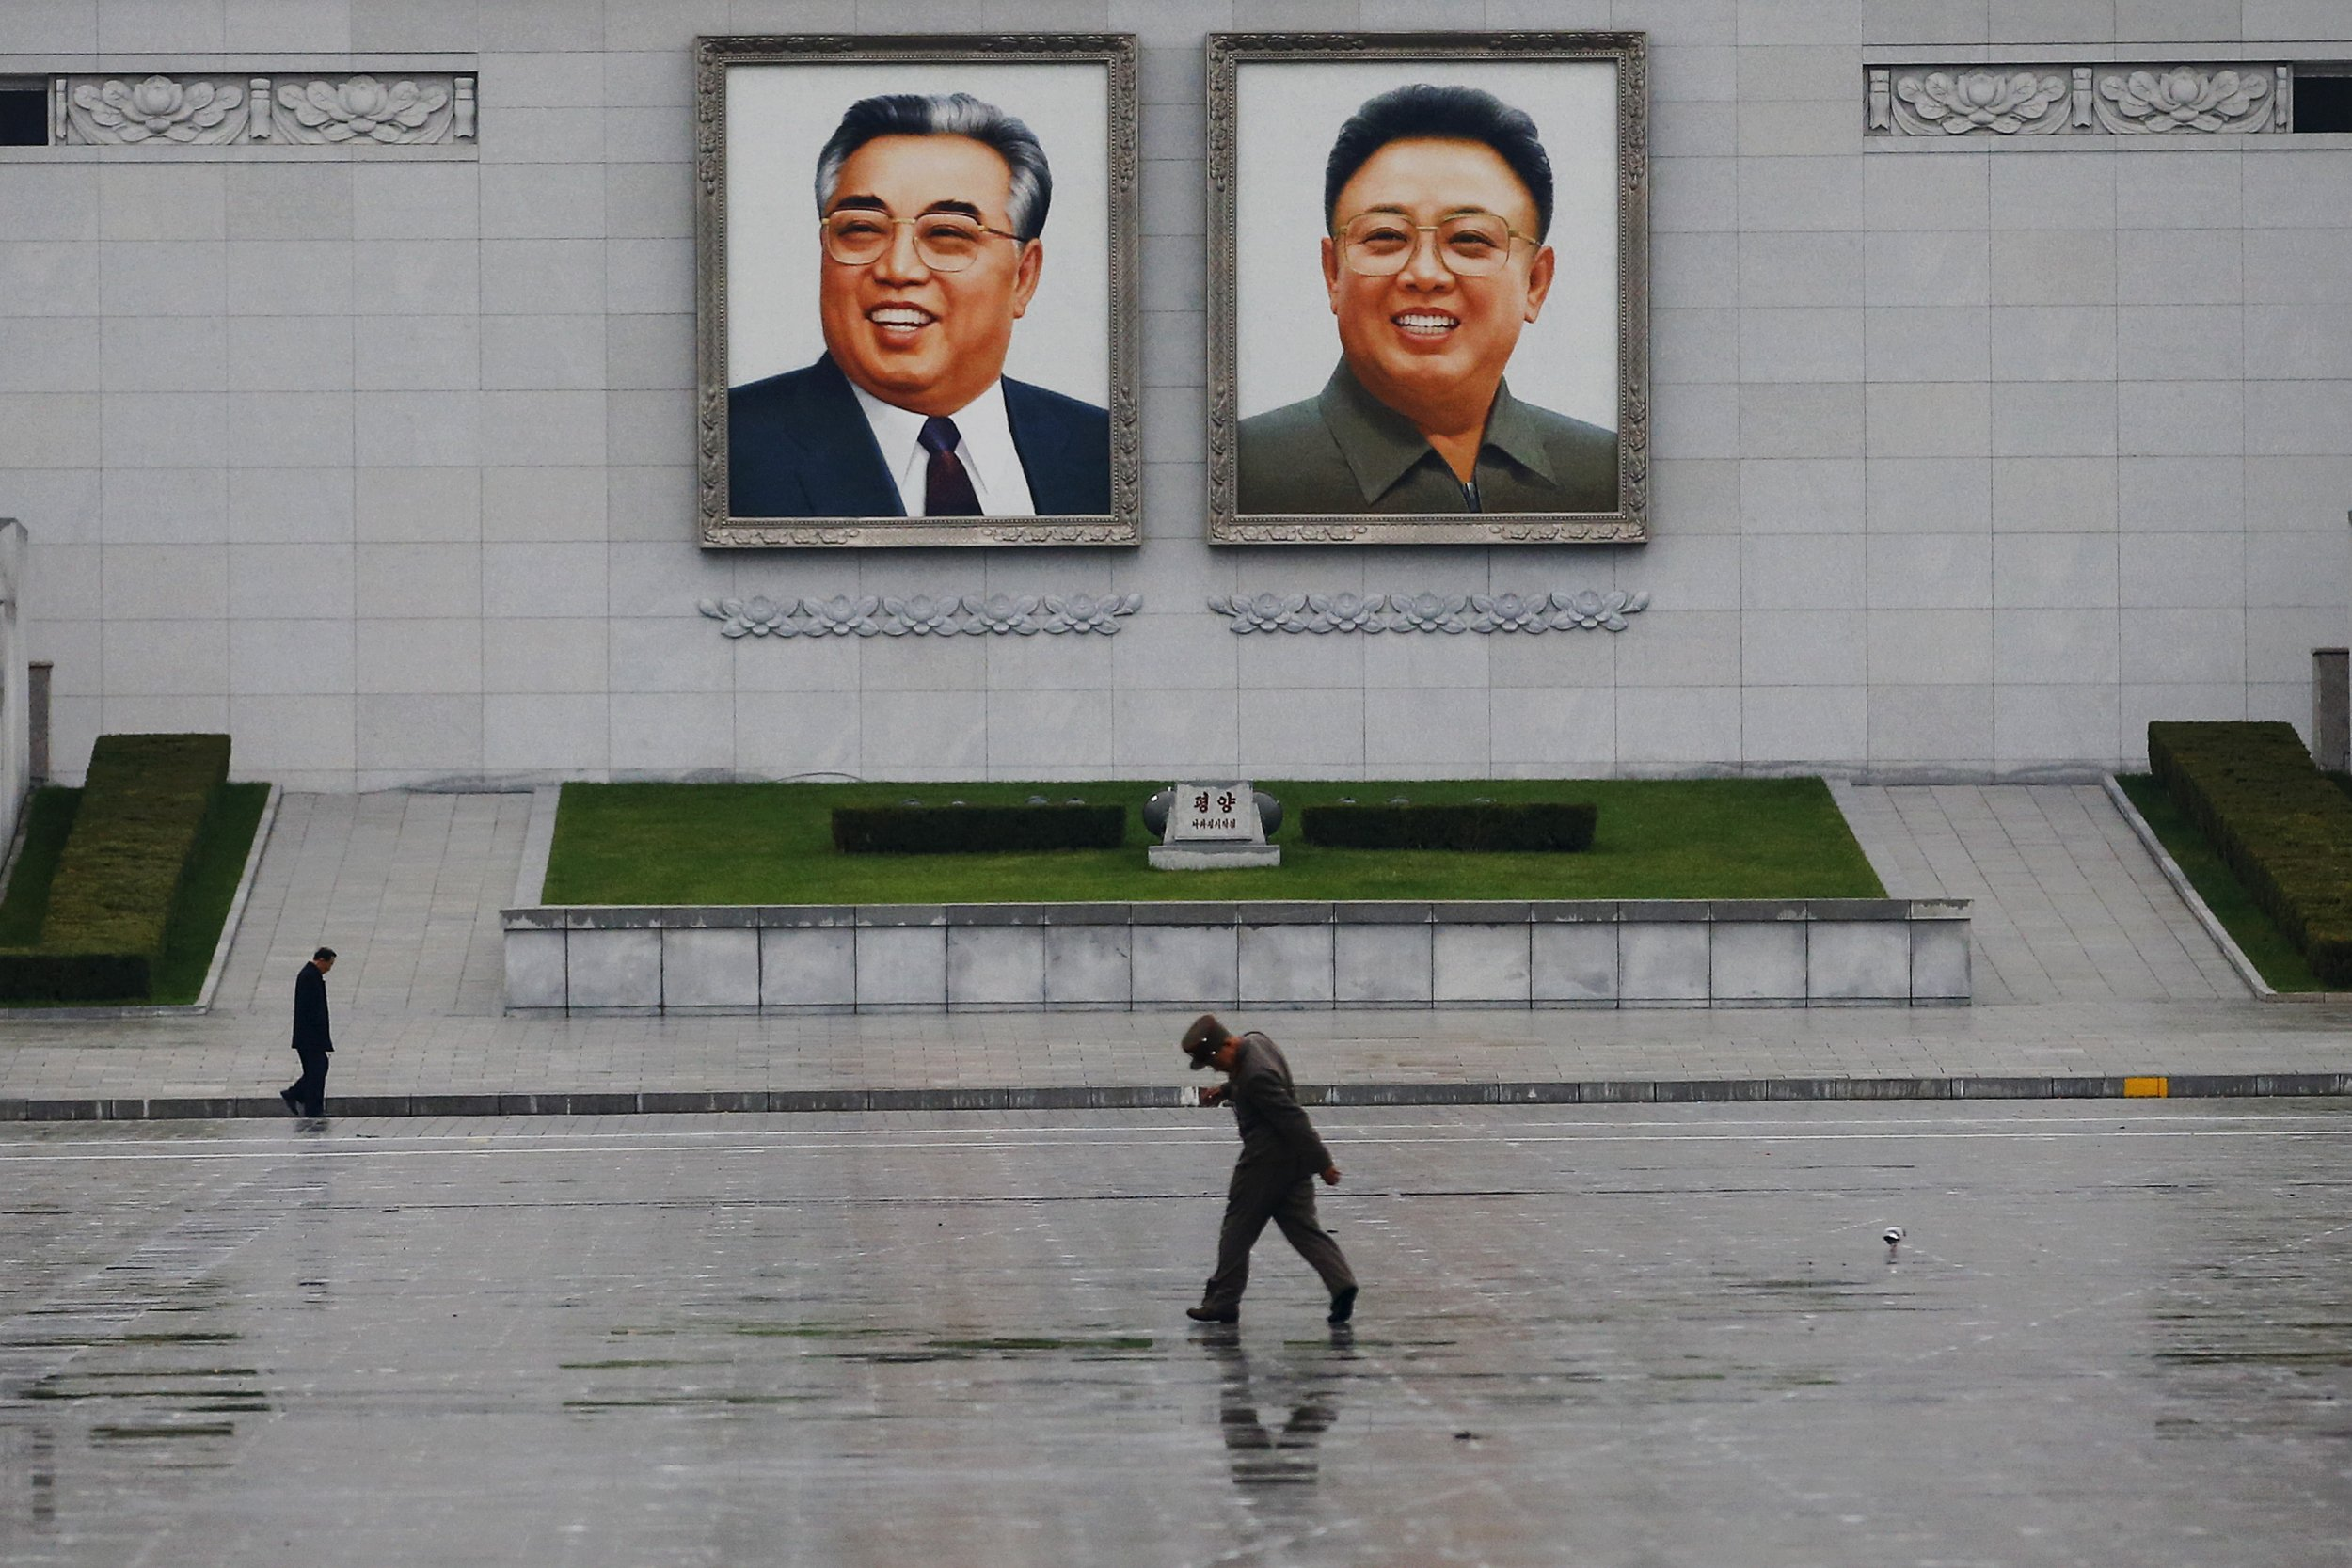 Portraits of Kim Il-Sung and Kim Jong-Il